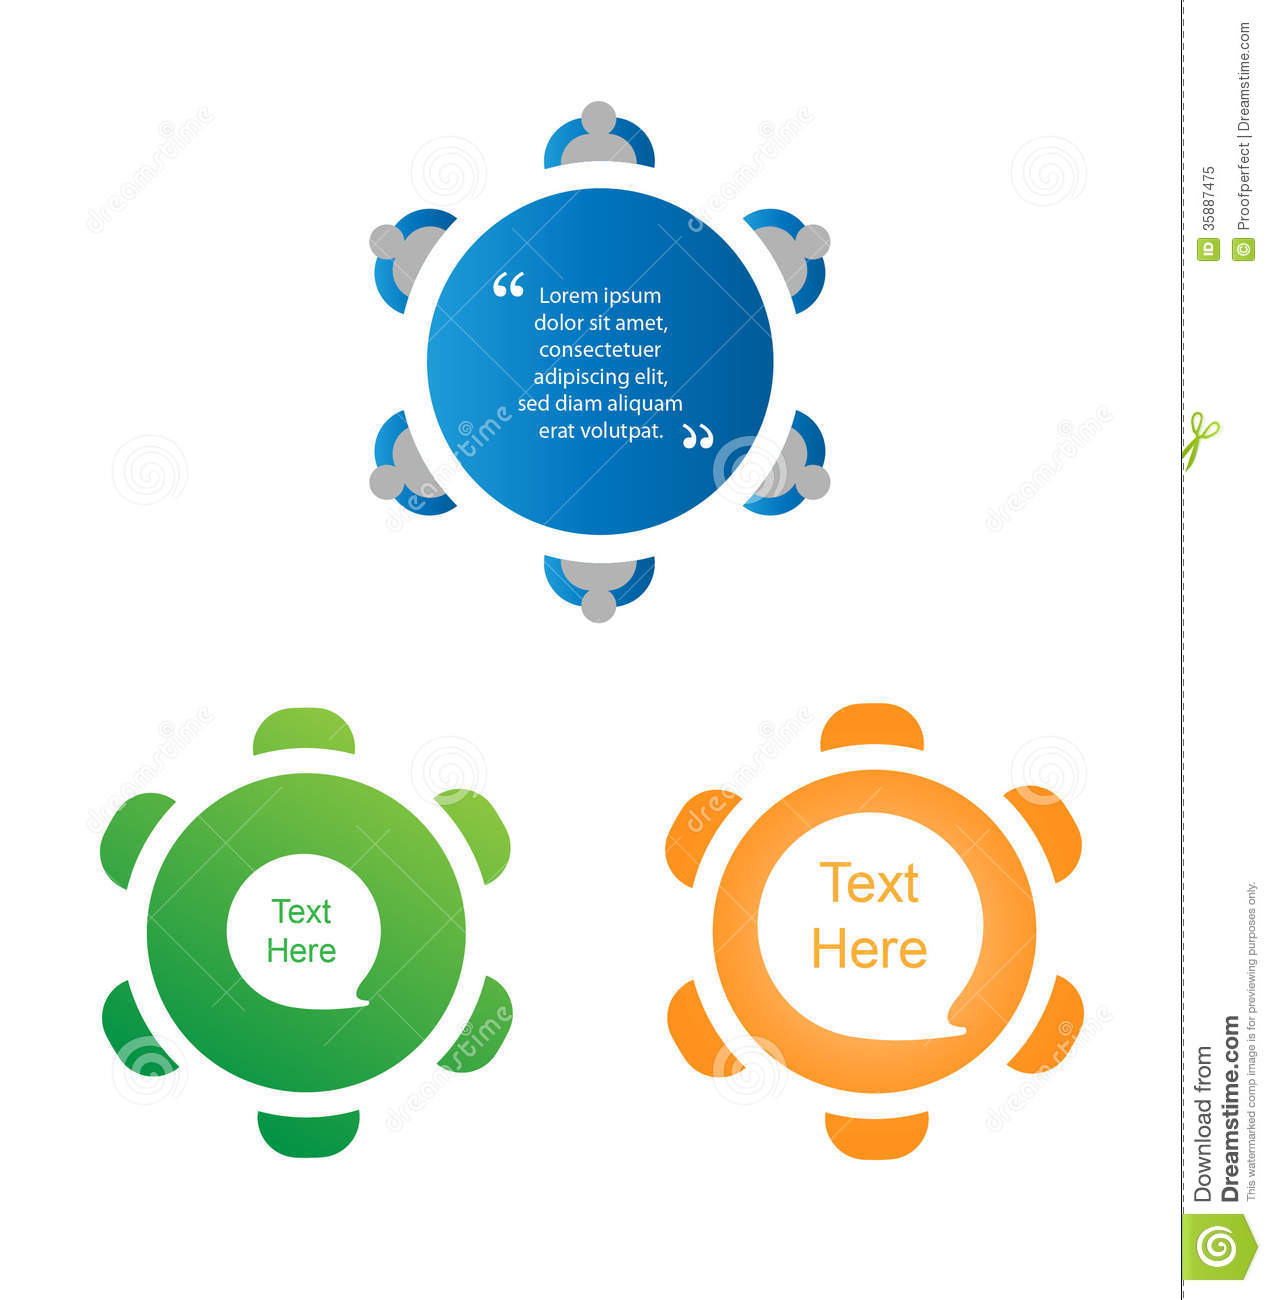 Round table meeting icon - Round Table Discussion Icon Set Royalty Free Stock Photo